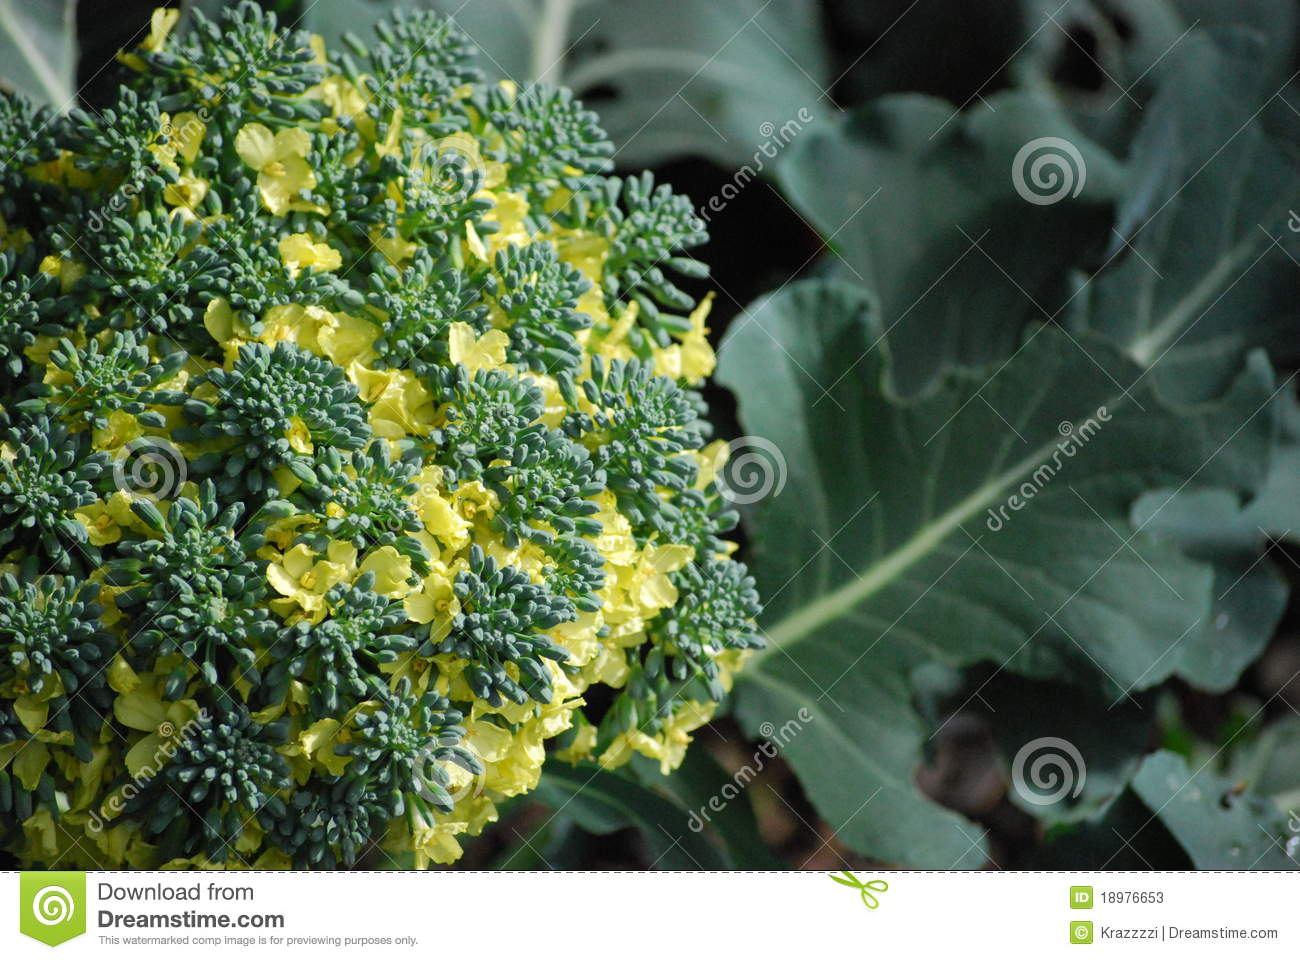 Broccoli Flower Flowering Broccoli Stock Image. Image Of Vegetable, Leaf